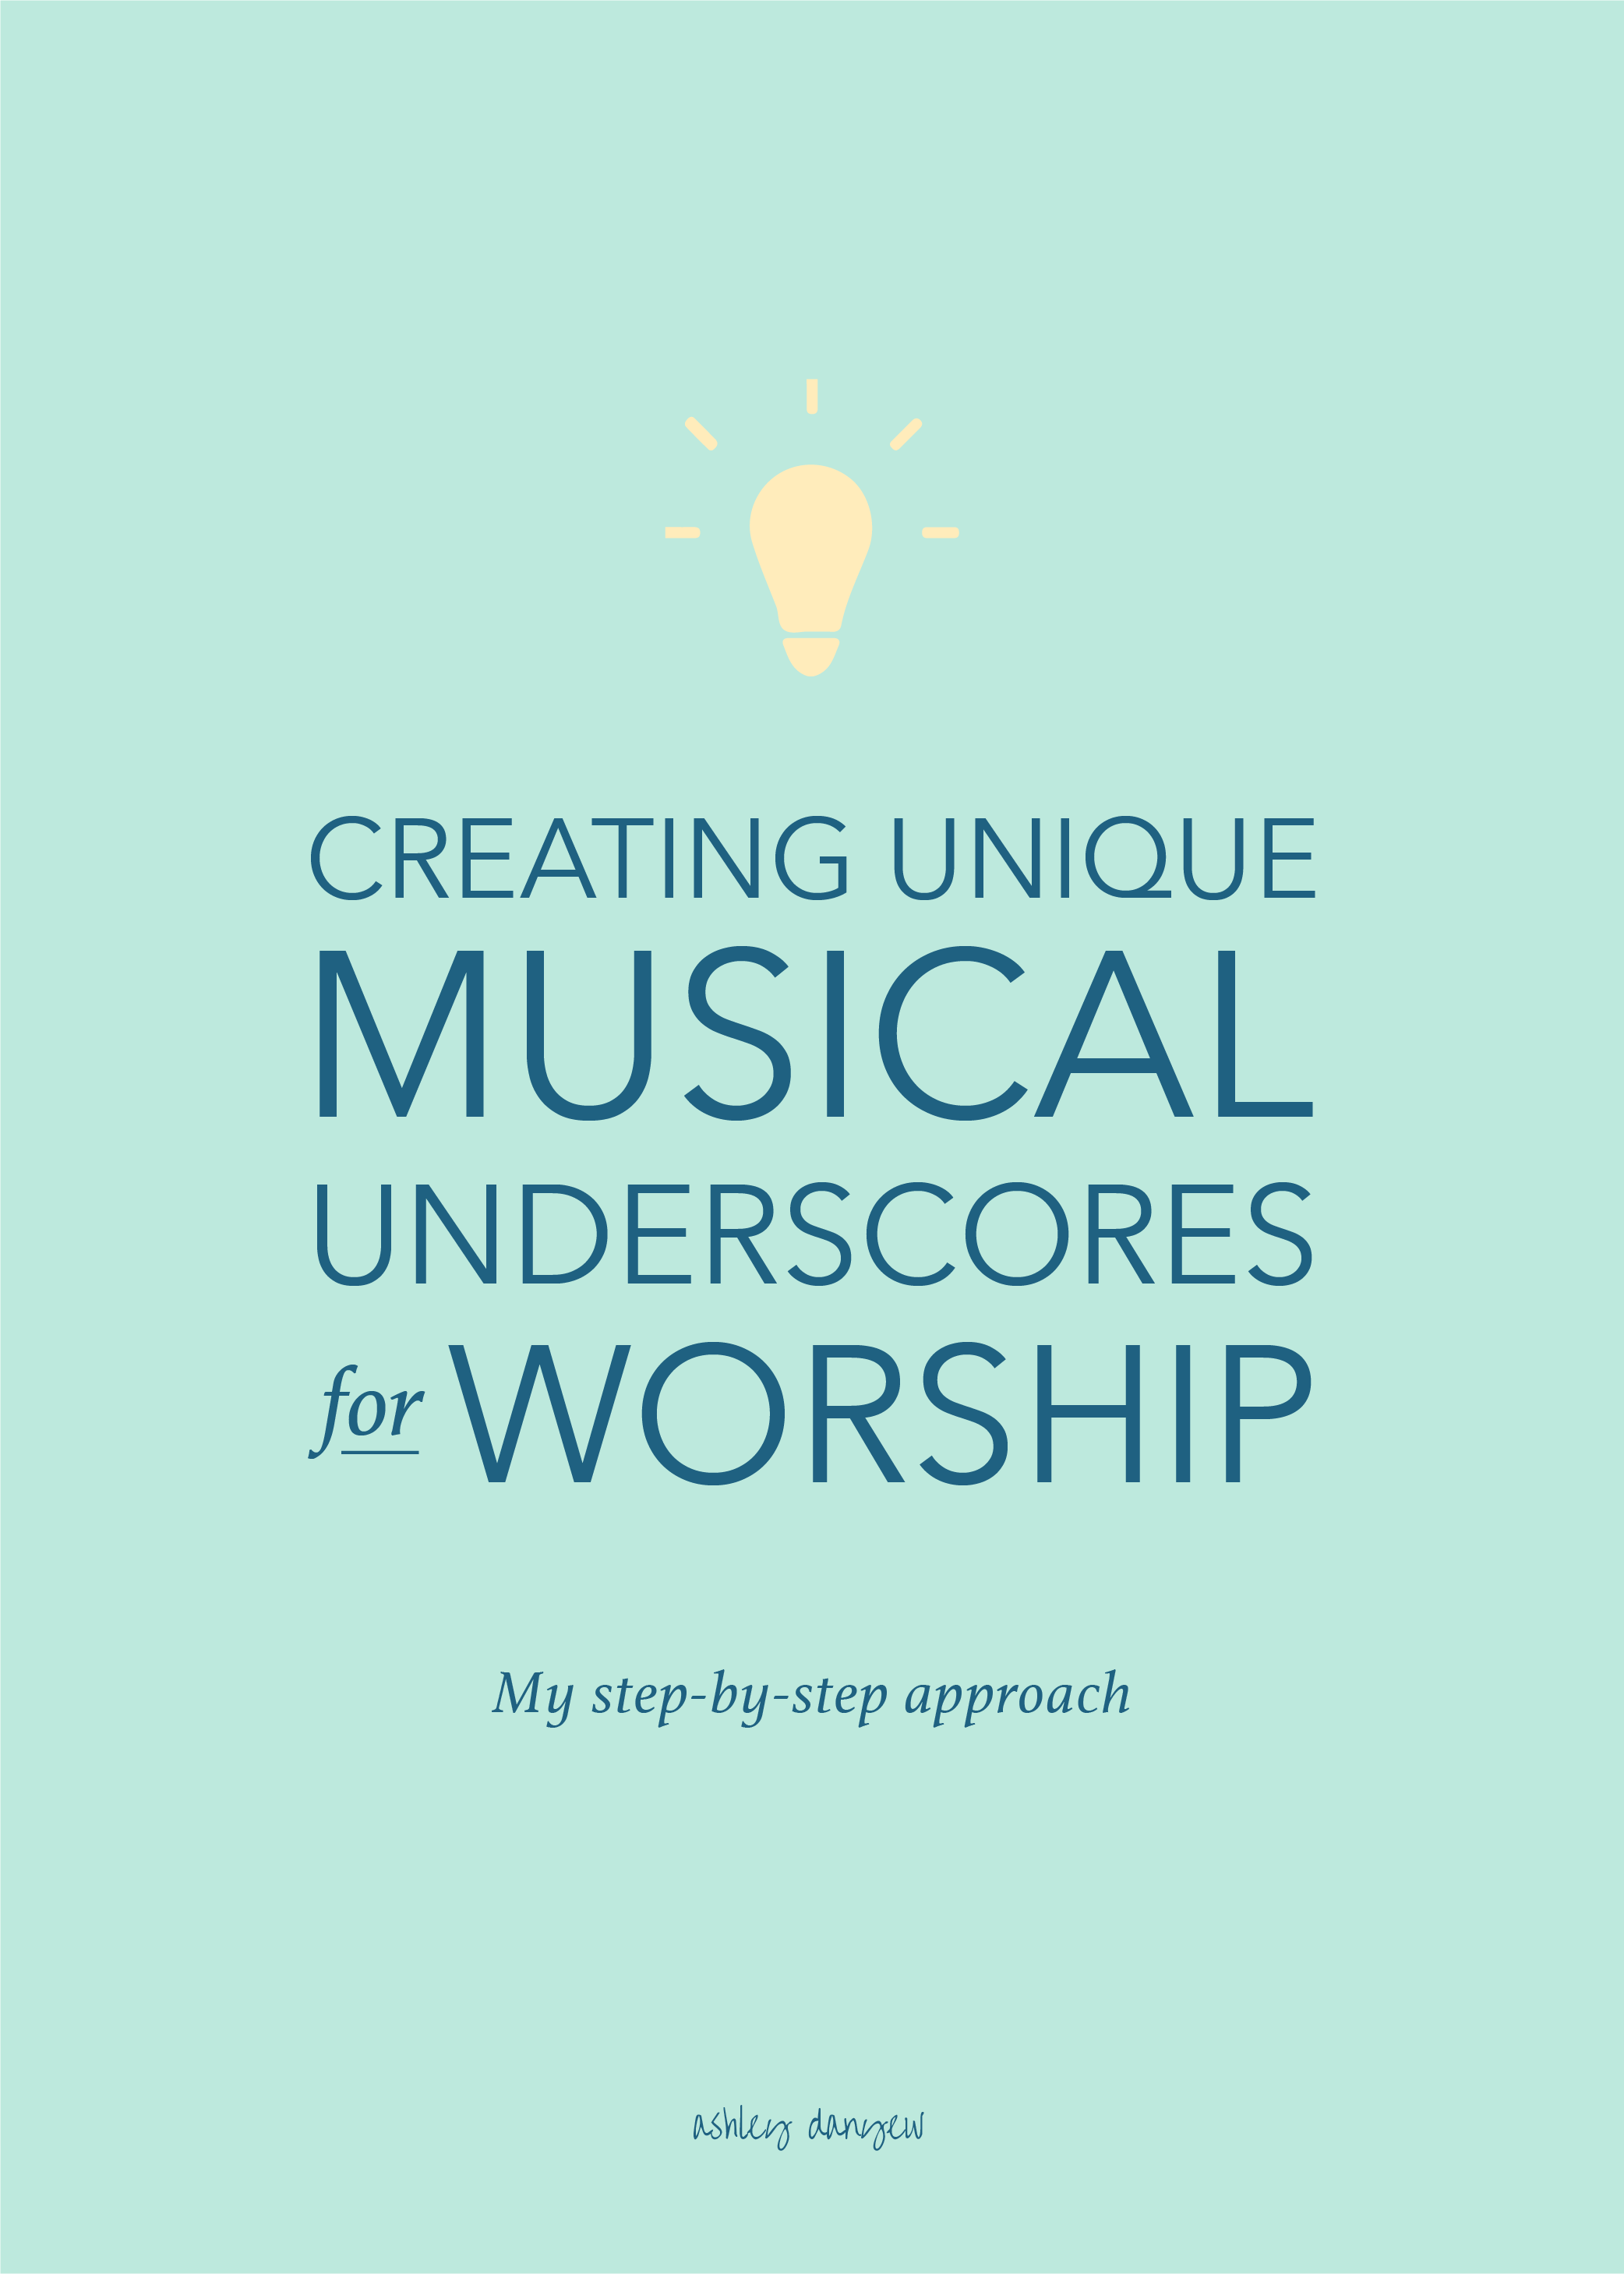 Copy of Creating Unique Musical Underscores for Worship: My Step-By-Step Process